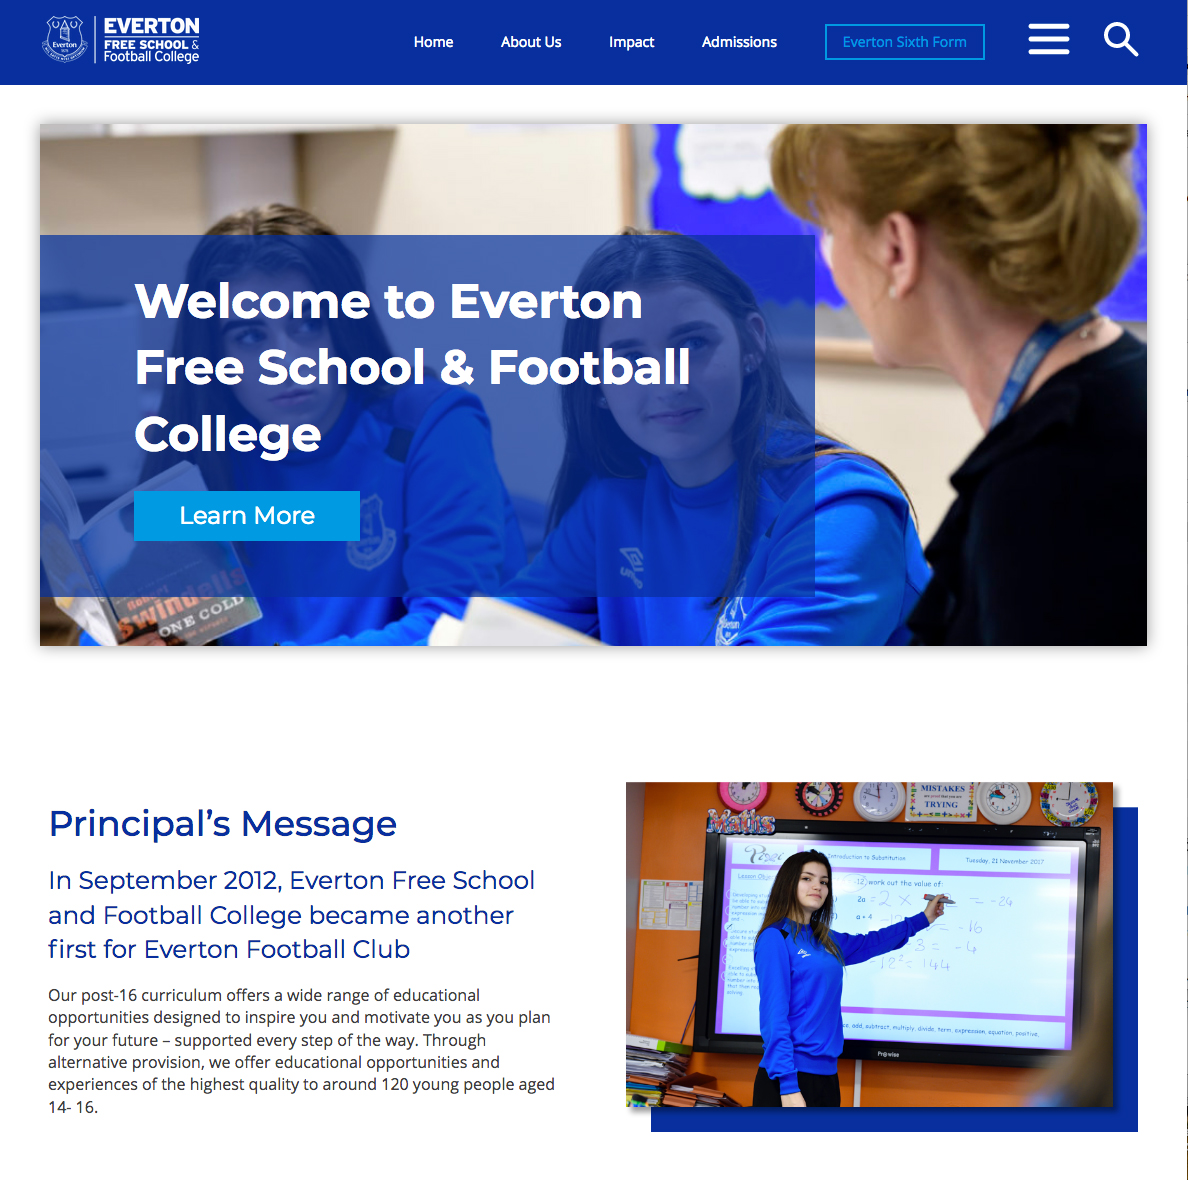 everton-free-school-football-college